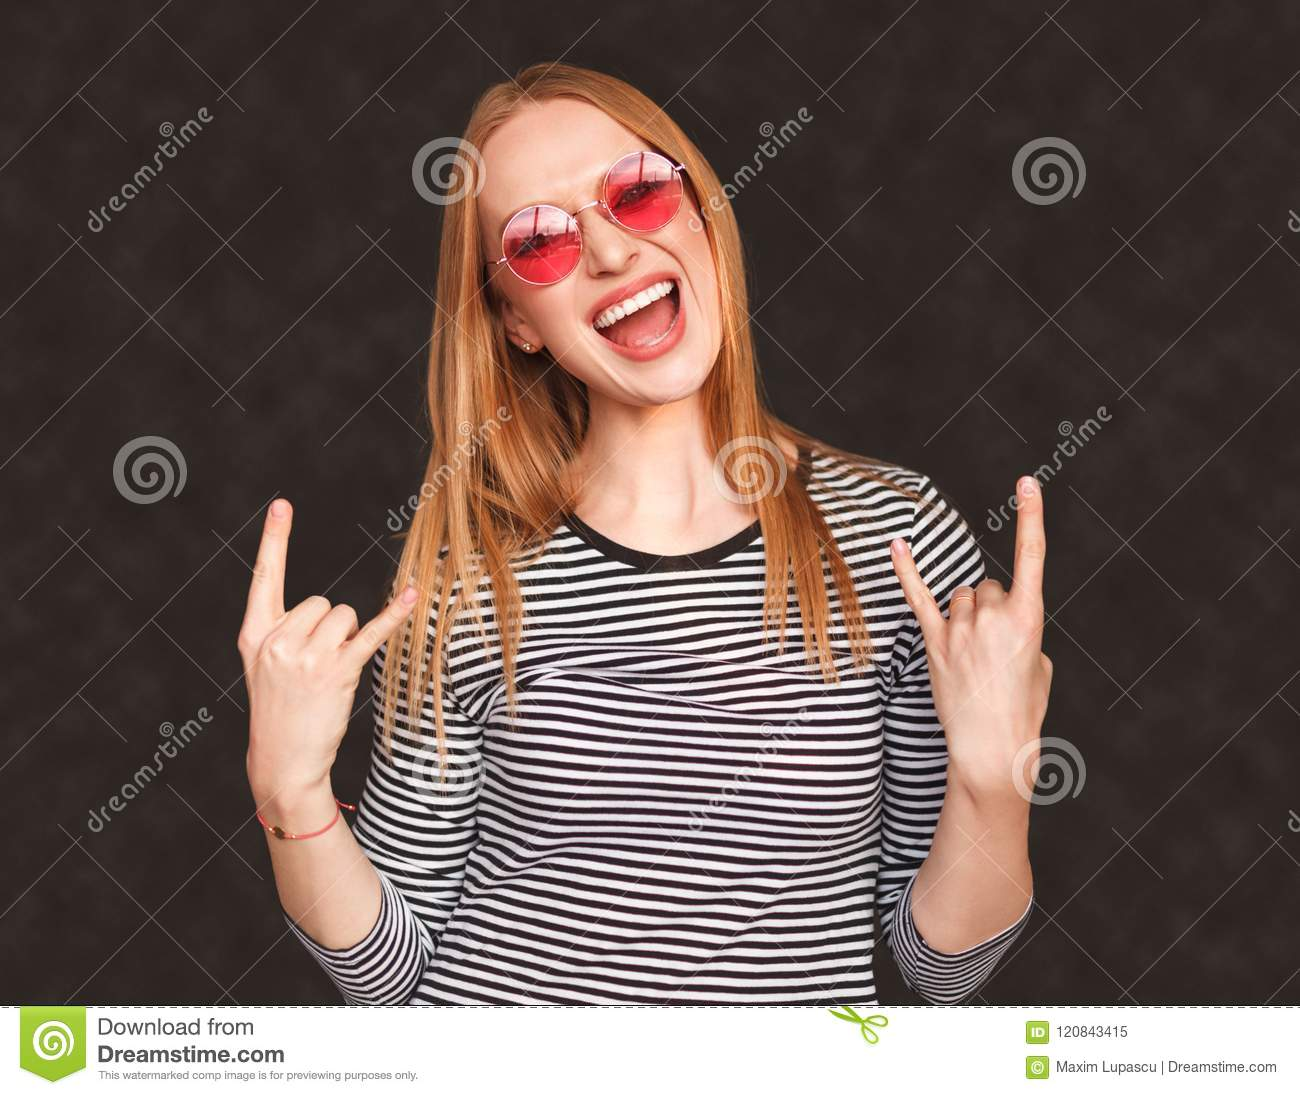 Excited young woman showing rock gesture